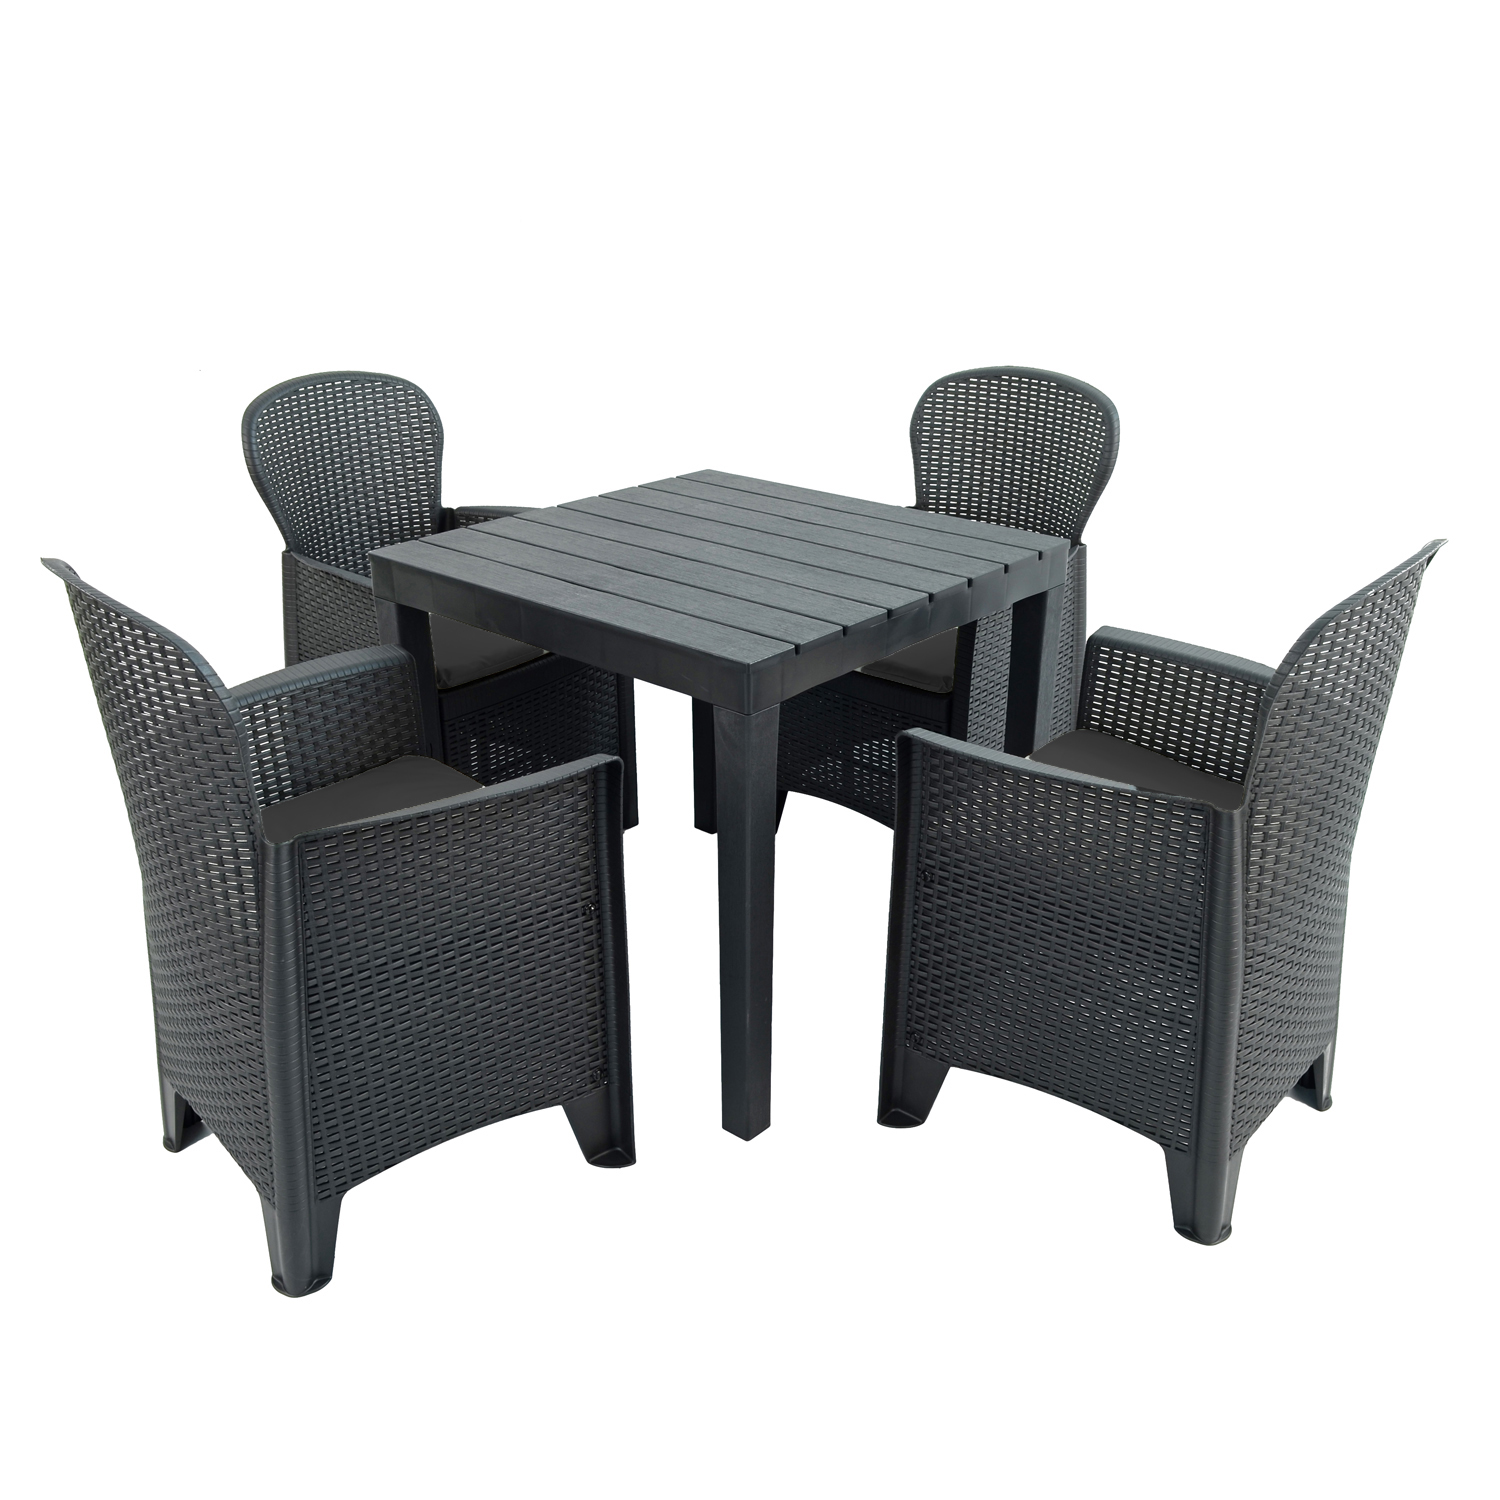 ROMA SQUARE TABLE WITH 4 SICILY CHAIRS SET ANTHRACITE